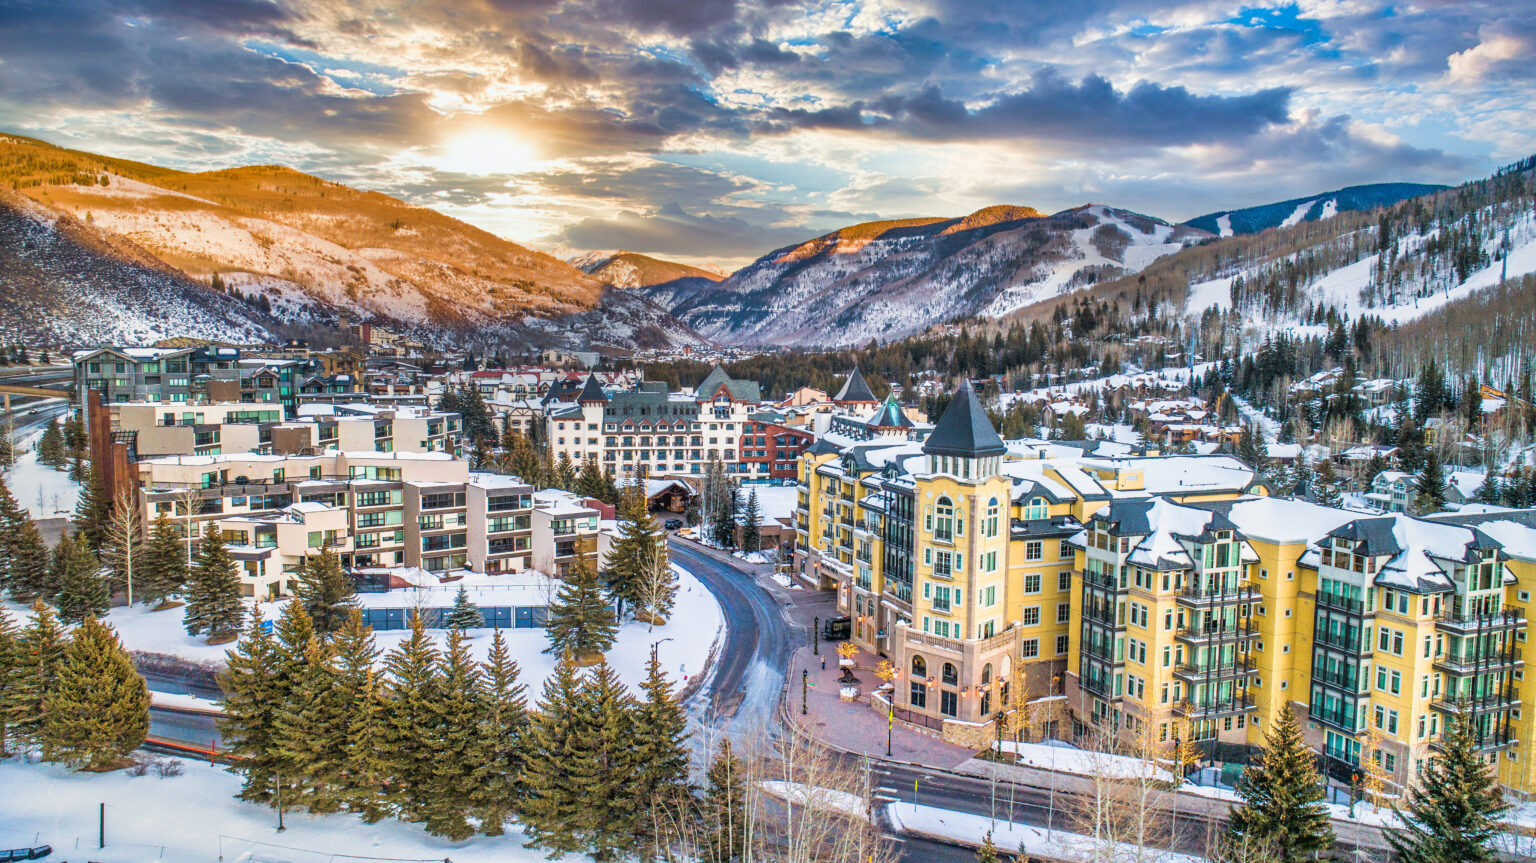 Denver airport to Vail & Vail to Denver airport limo service